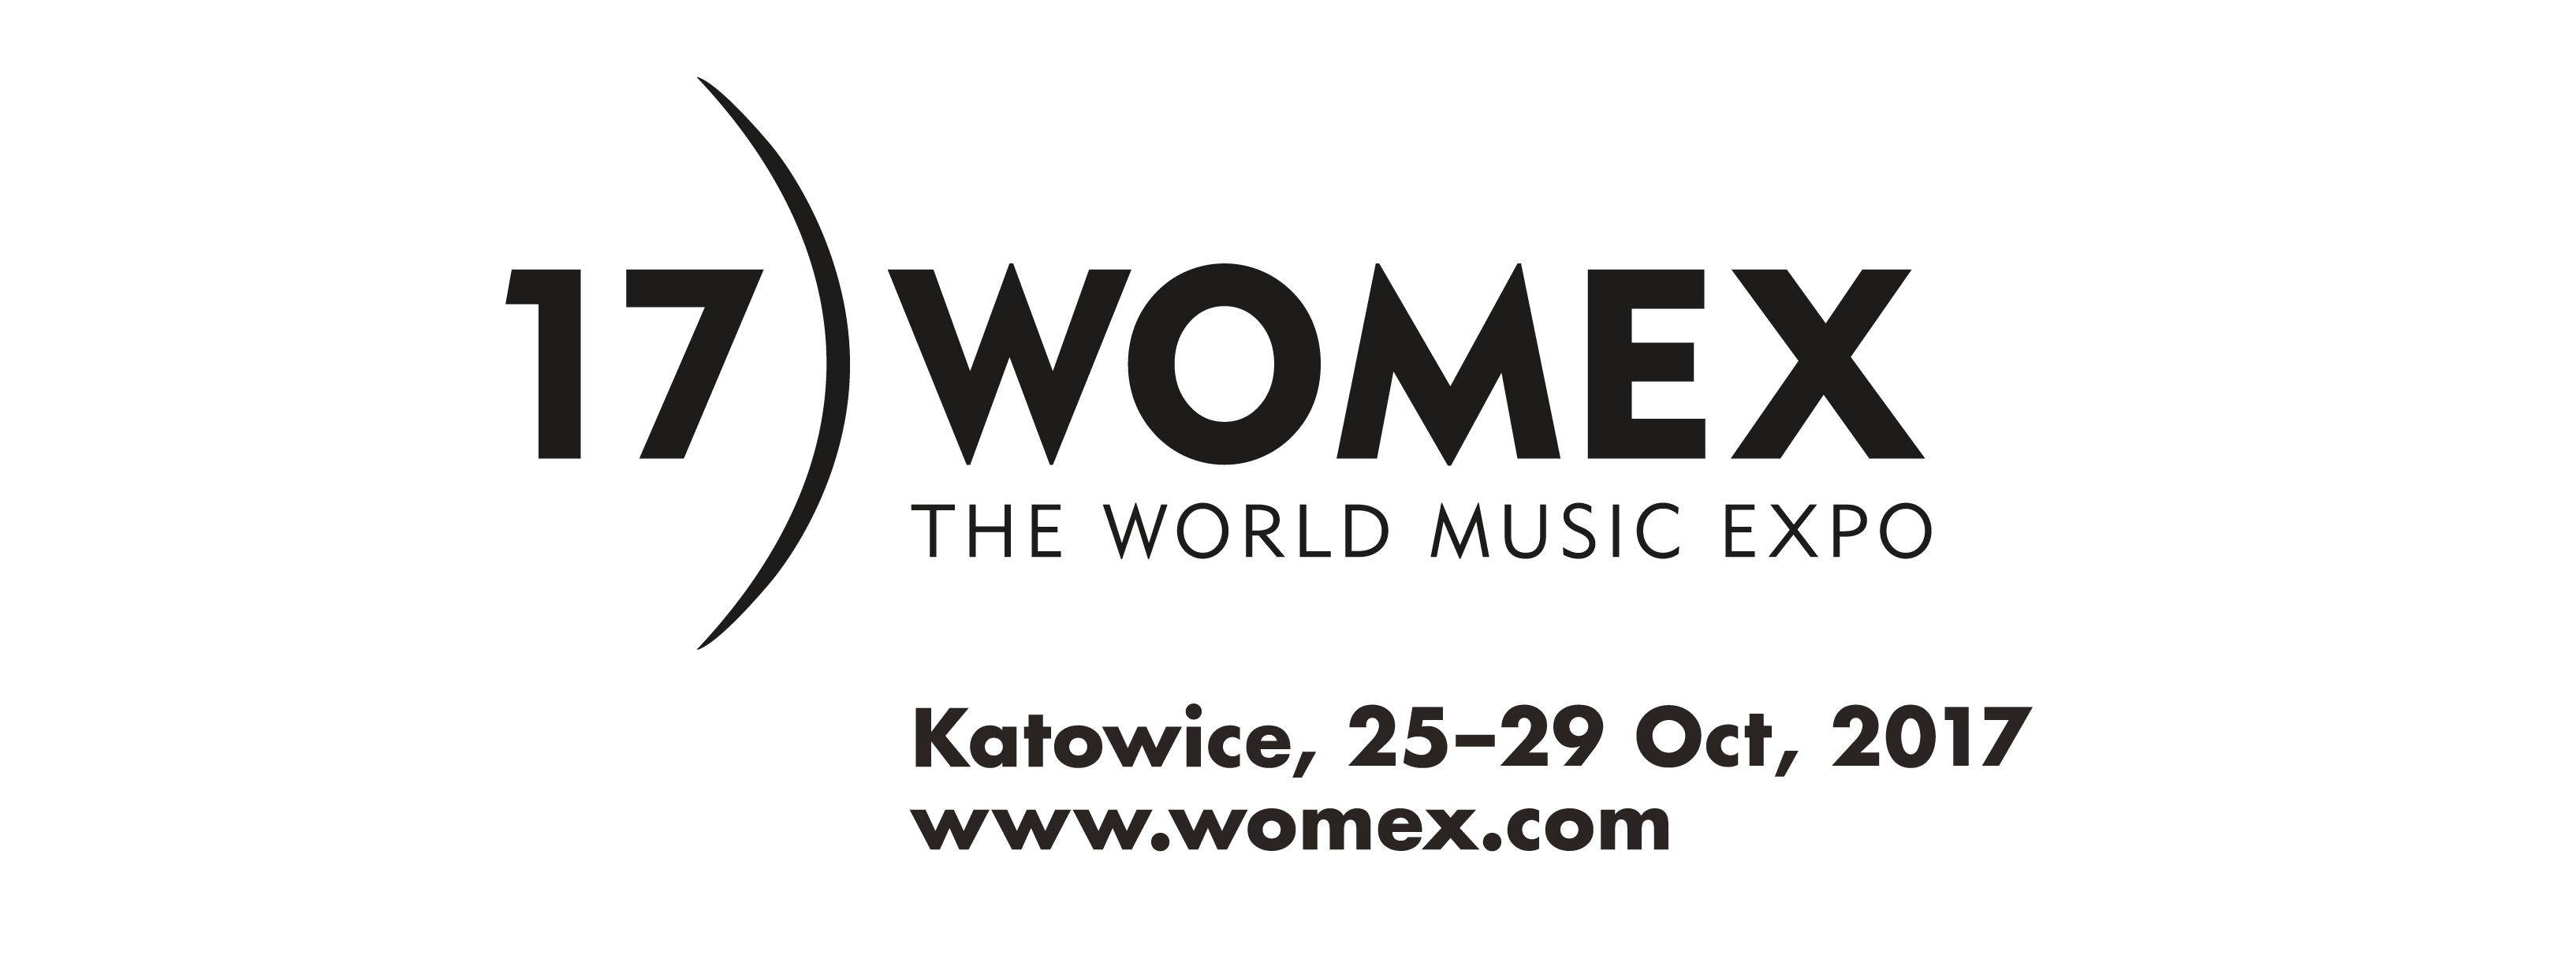 17. WOMEX Expo